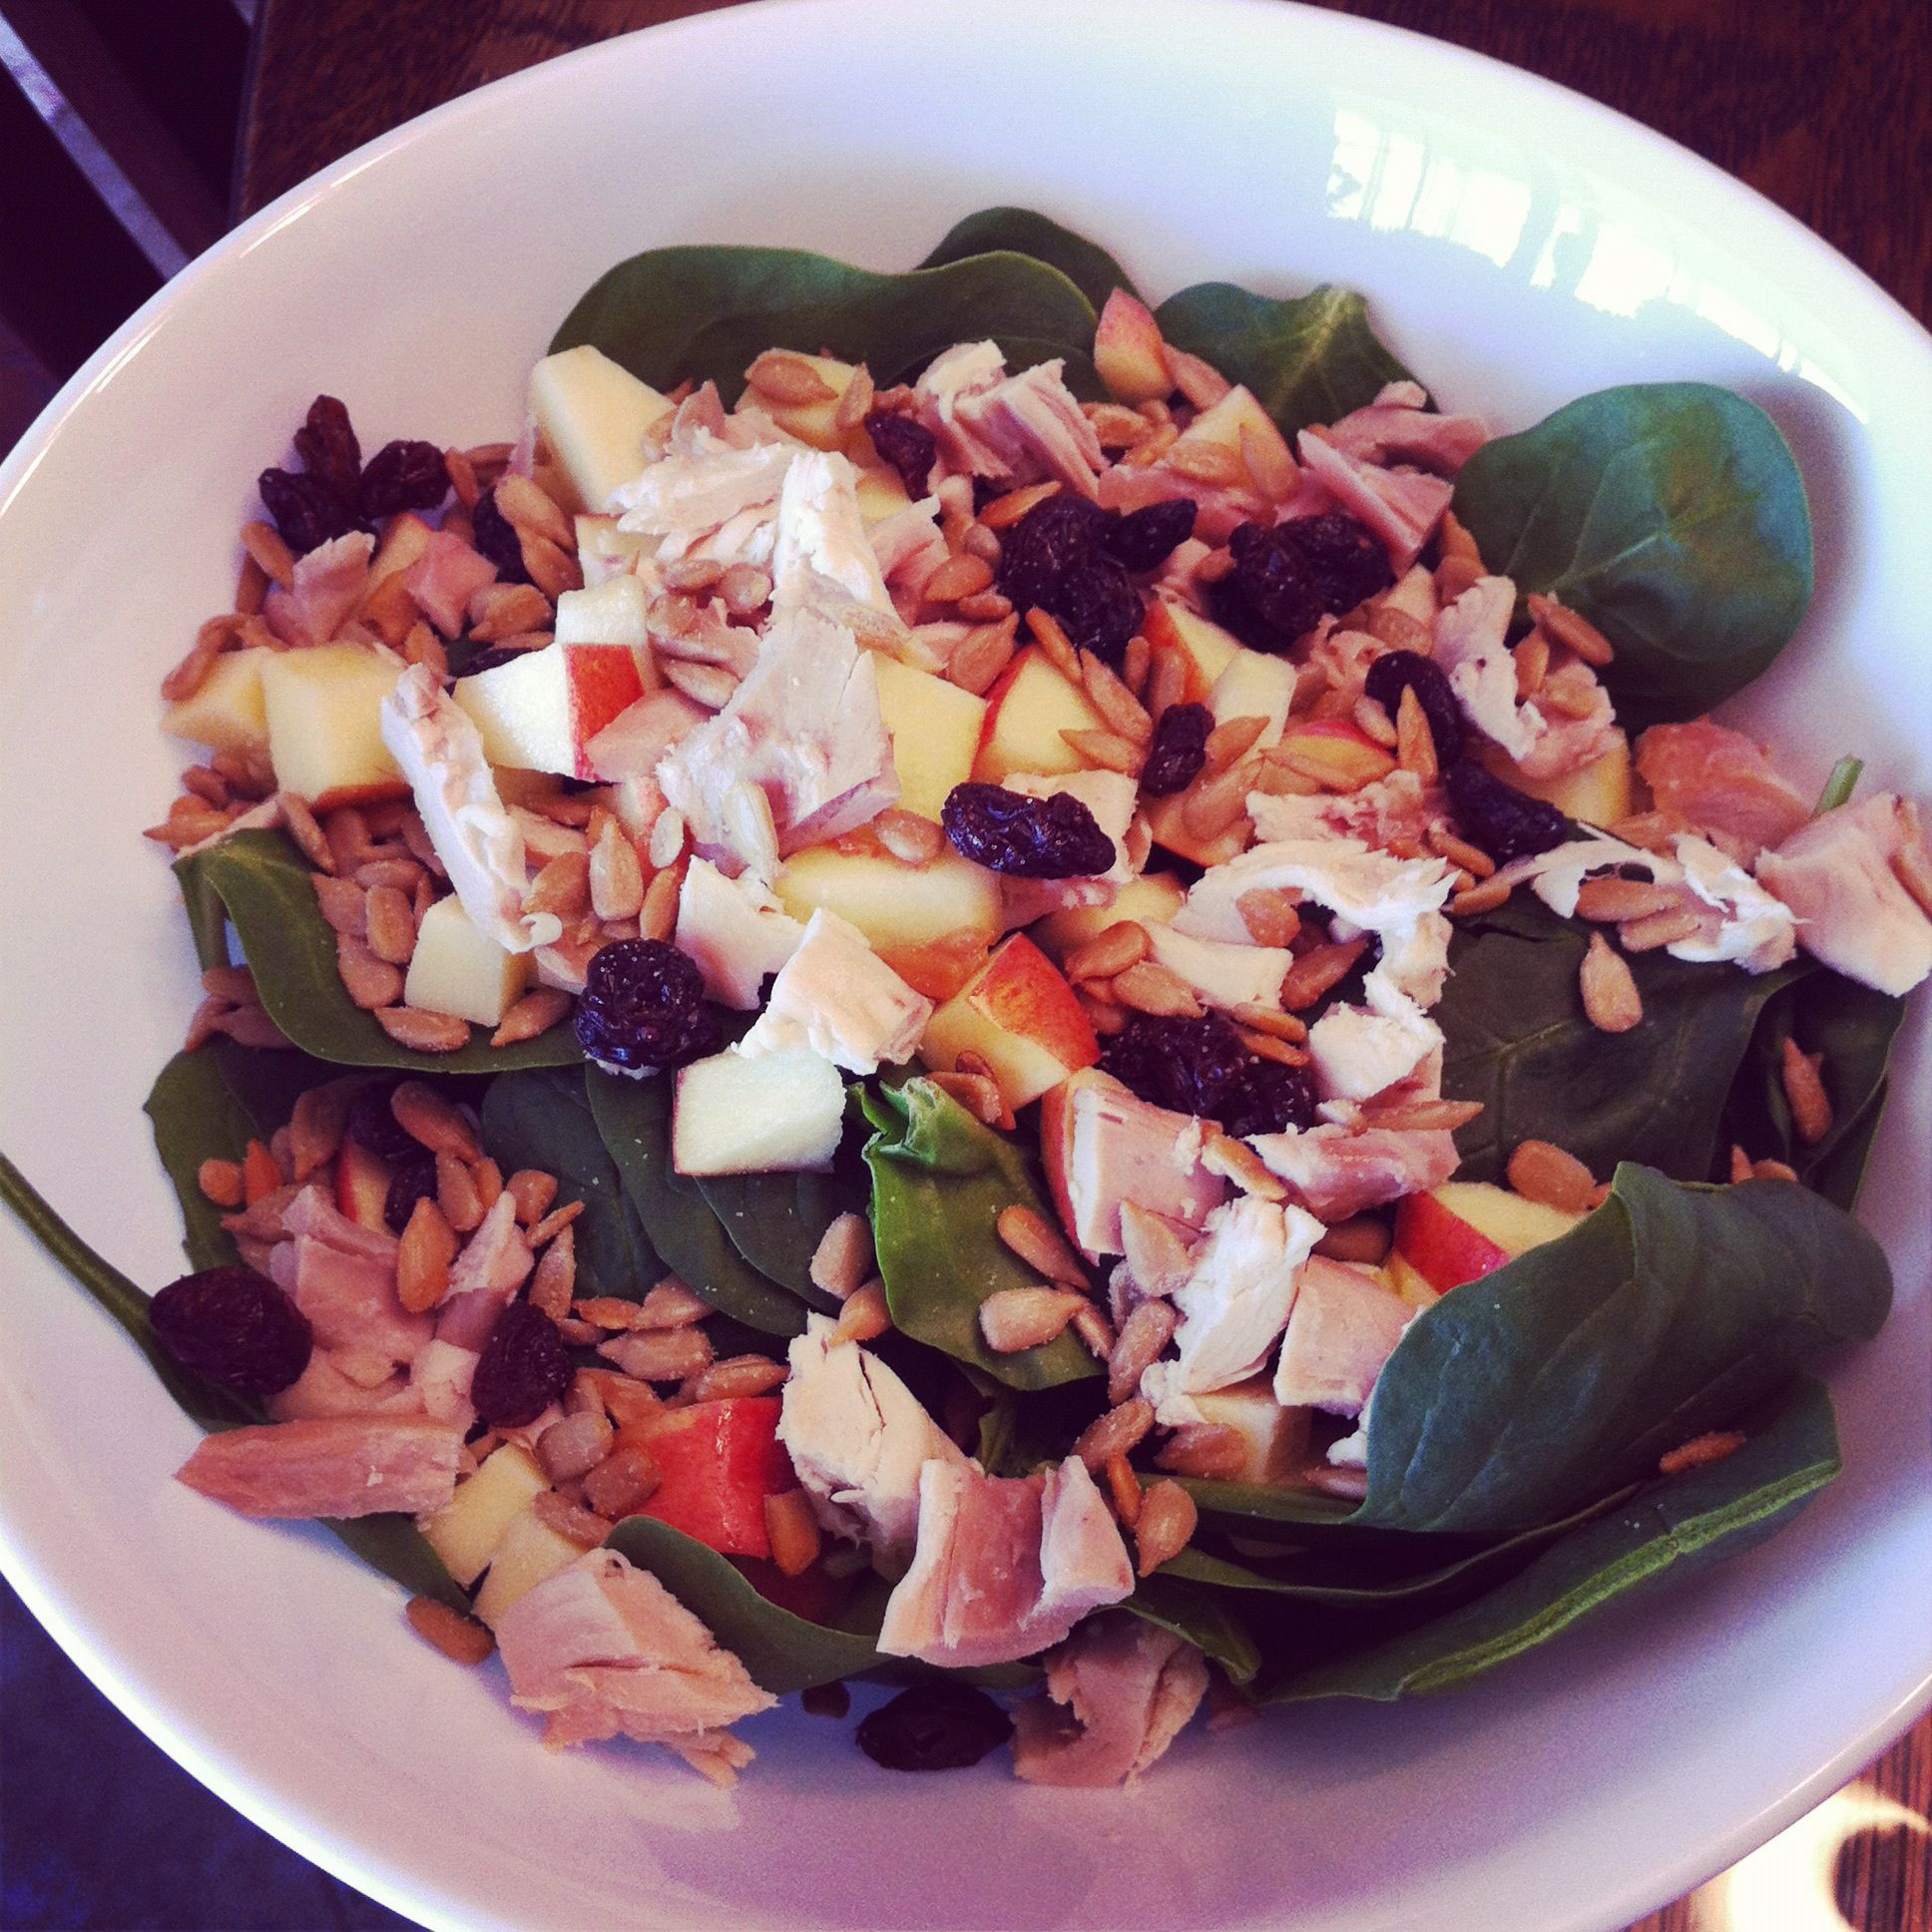 Lunch! Salad with spinach, shredded chicken, apples